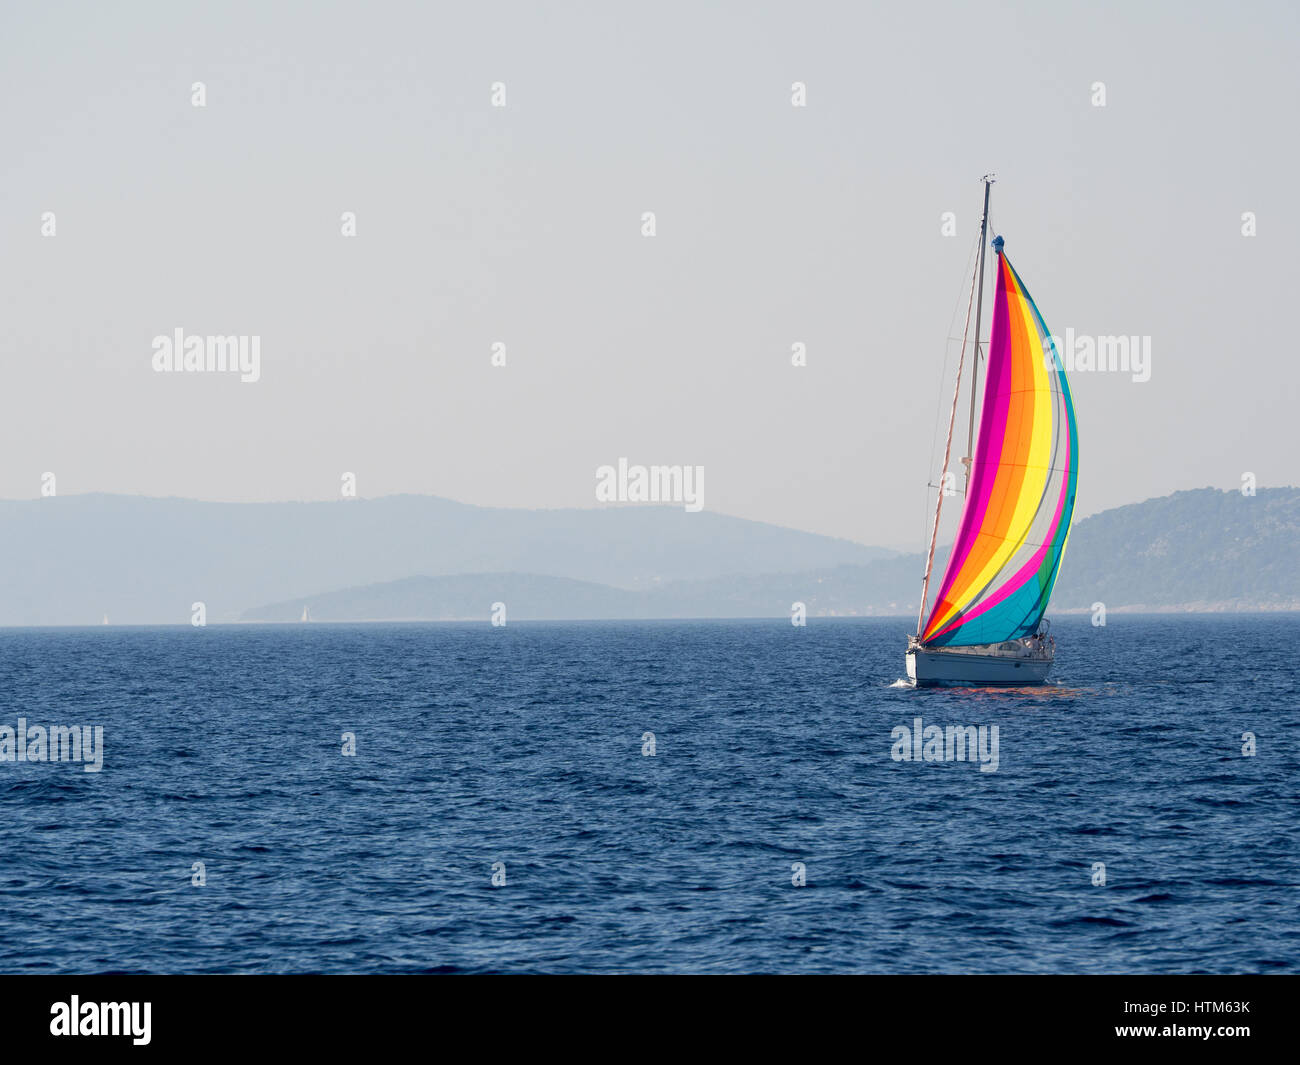 a yacht sailboat boat with multicoloured multicolored sail sails sailing on the sea ocean Mediterranean blue sky - Stock Image